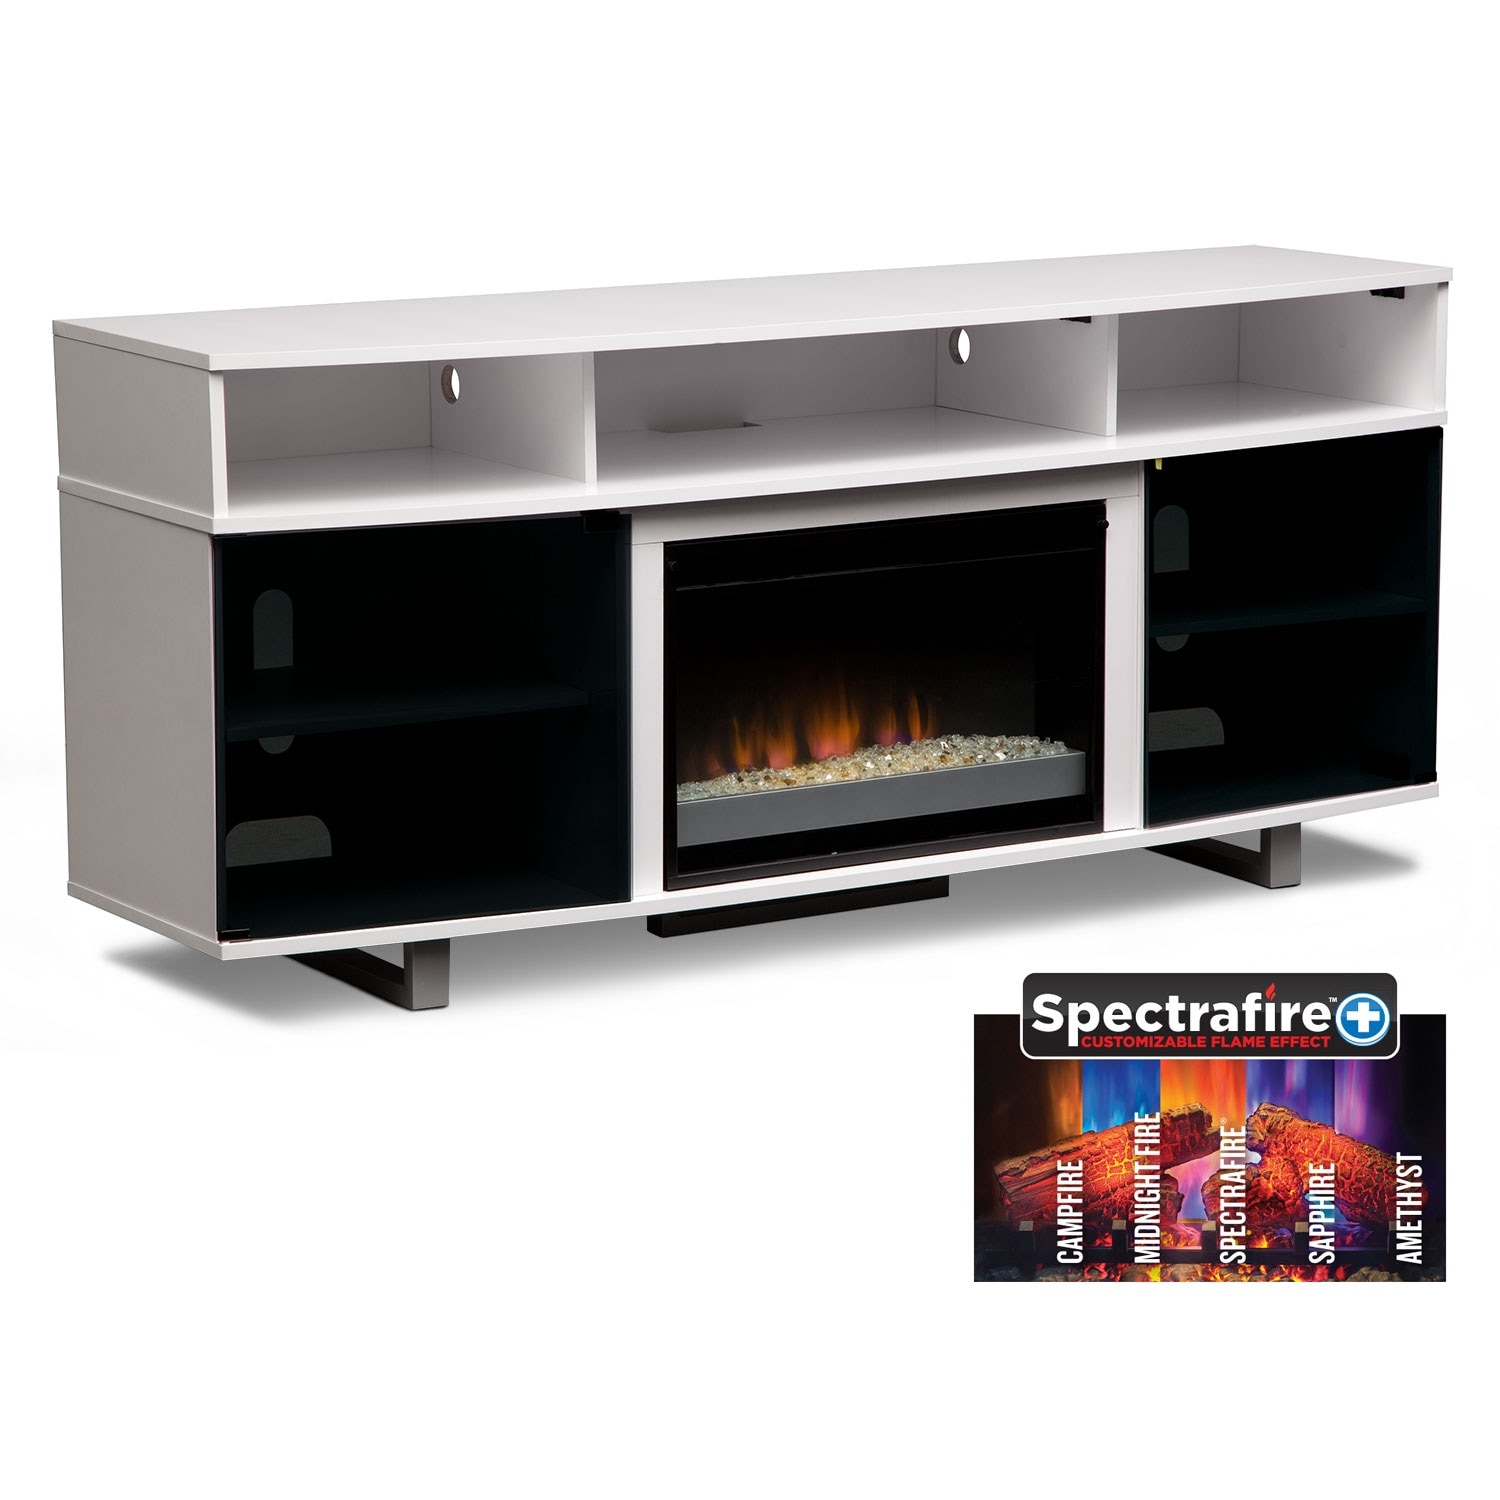 "Pacer 72"" Contemporary Fireplace TV Stand - White"